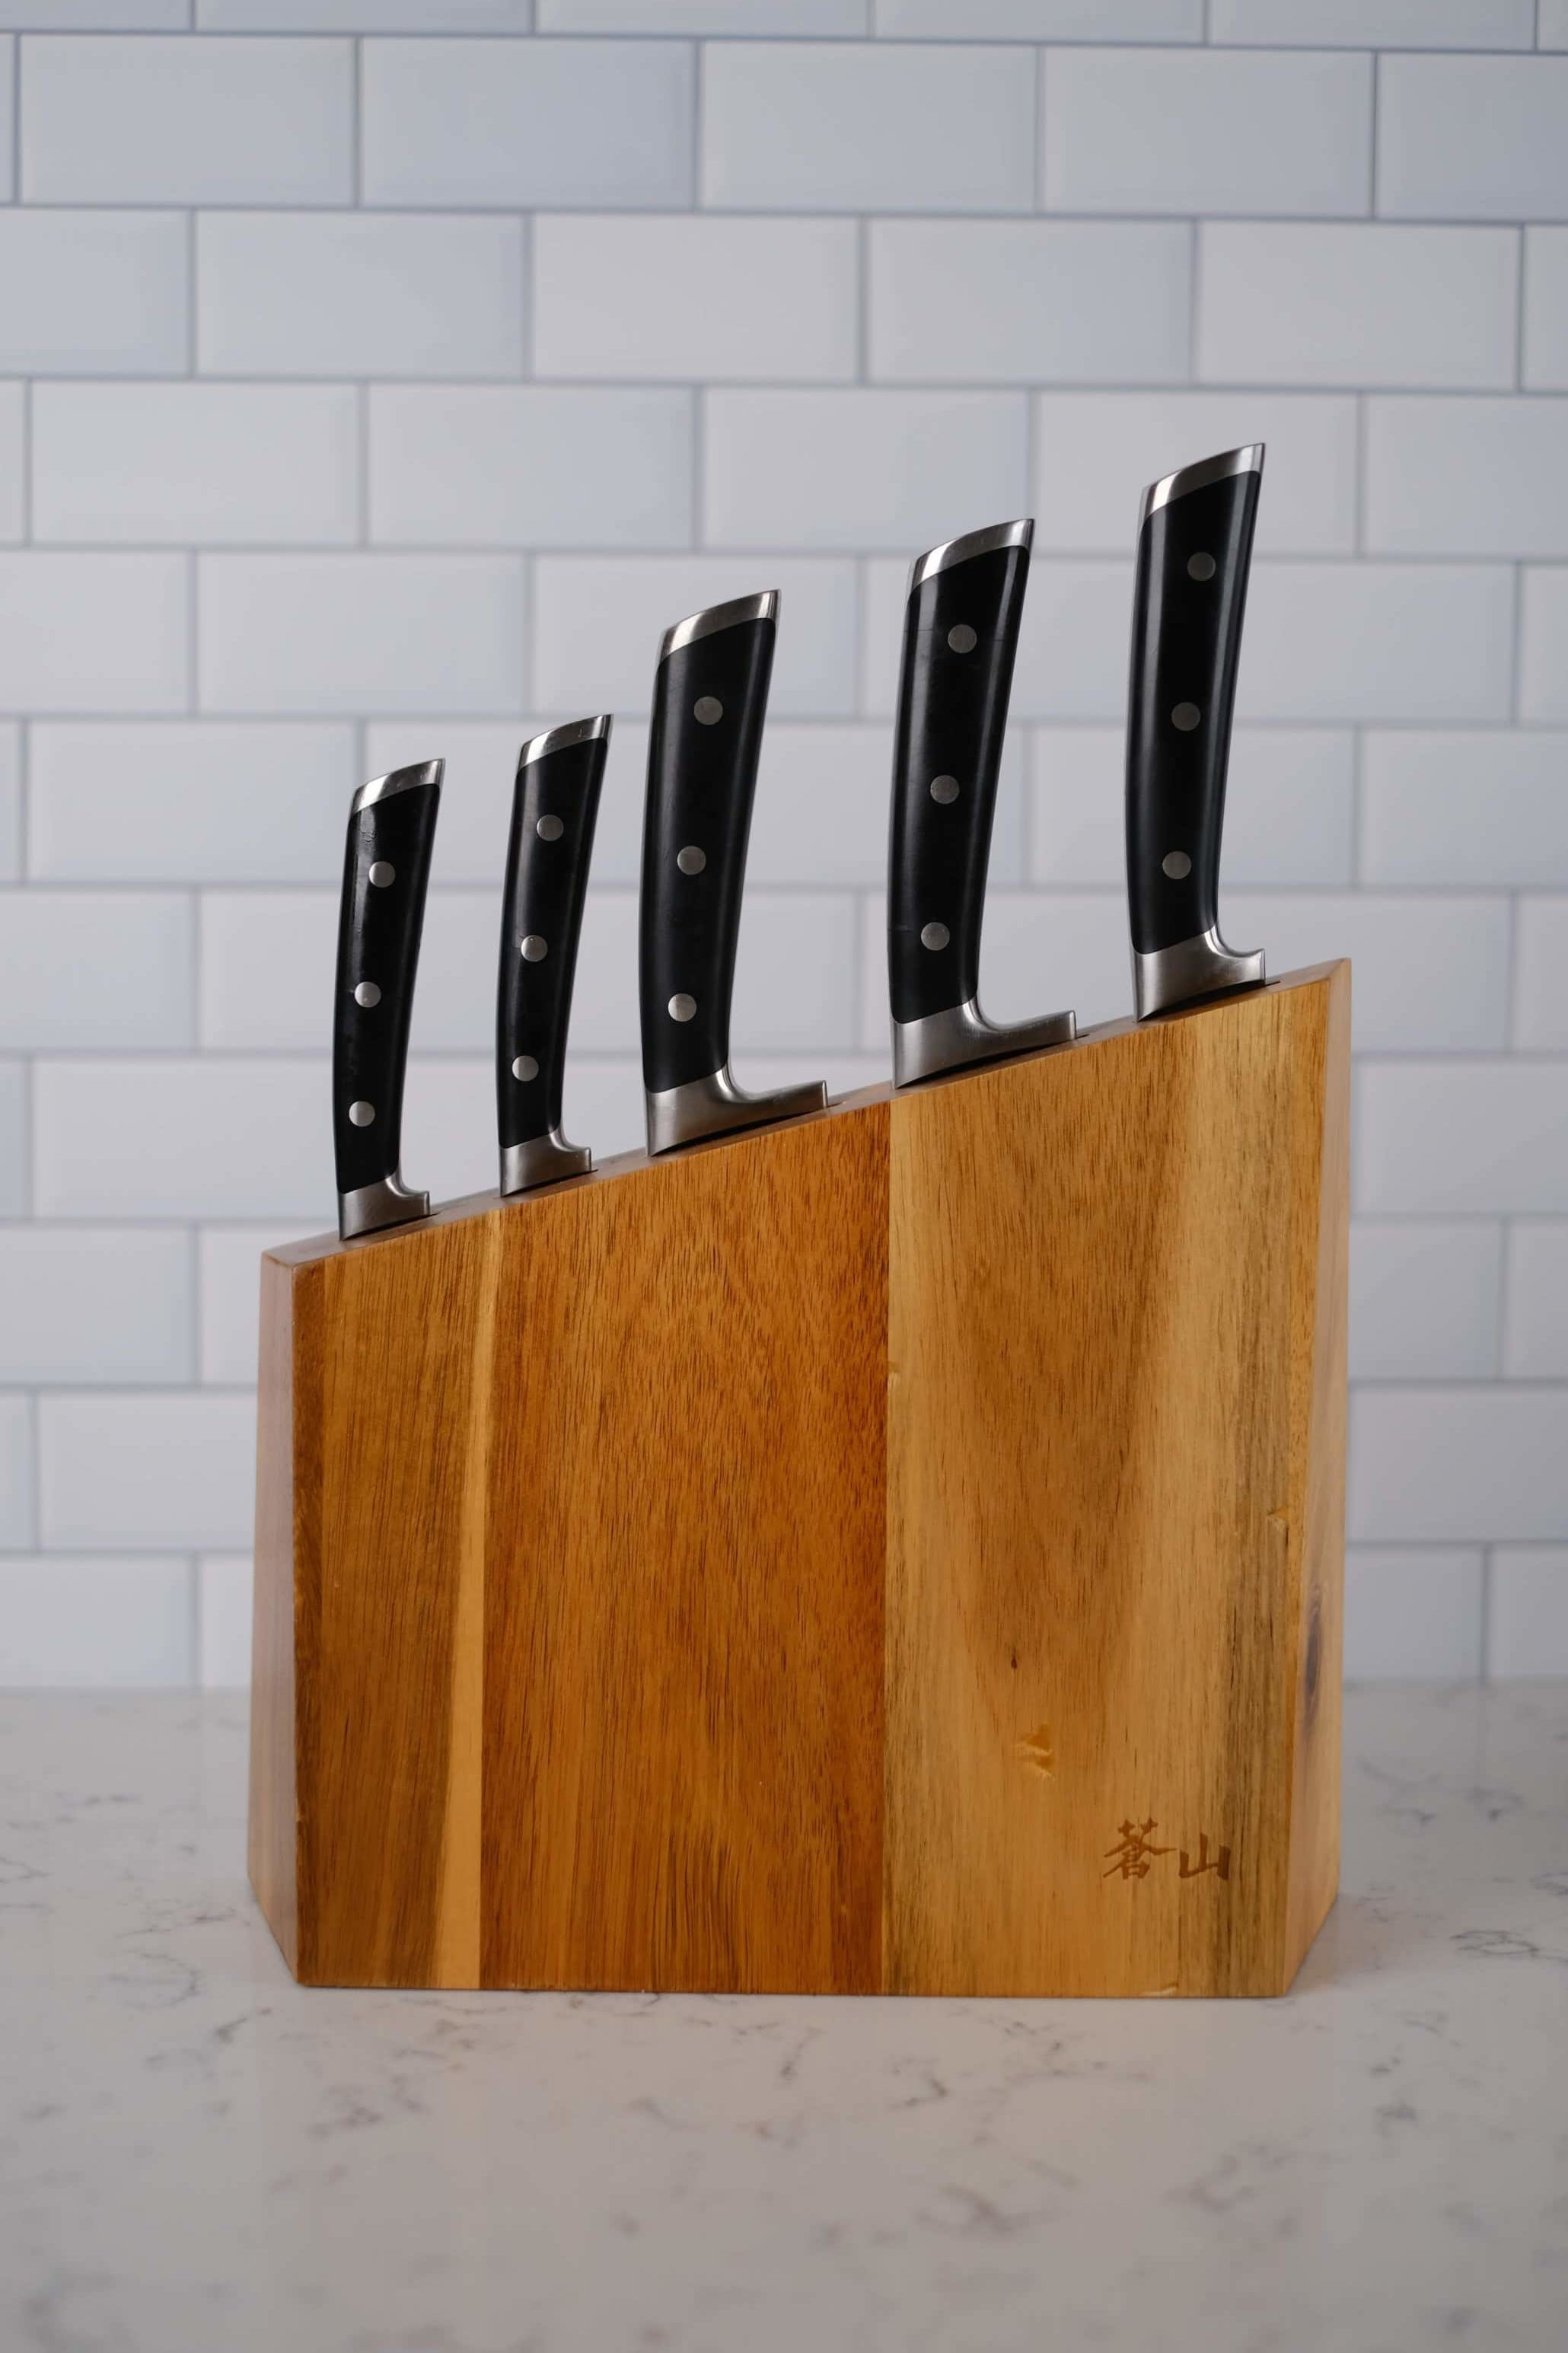 knife block set with five knives on a white countertop